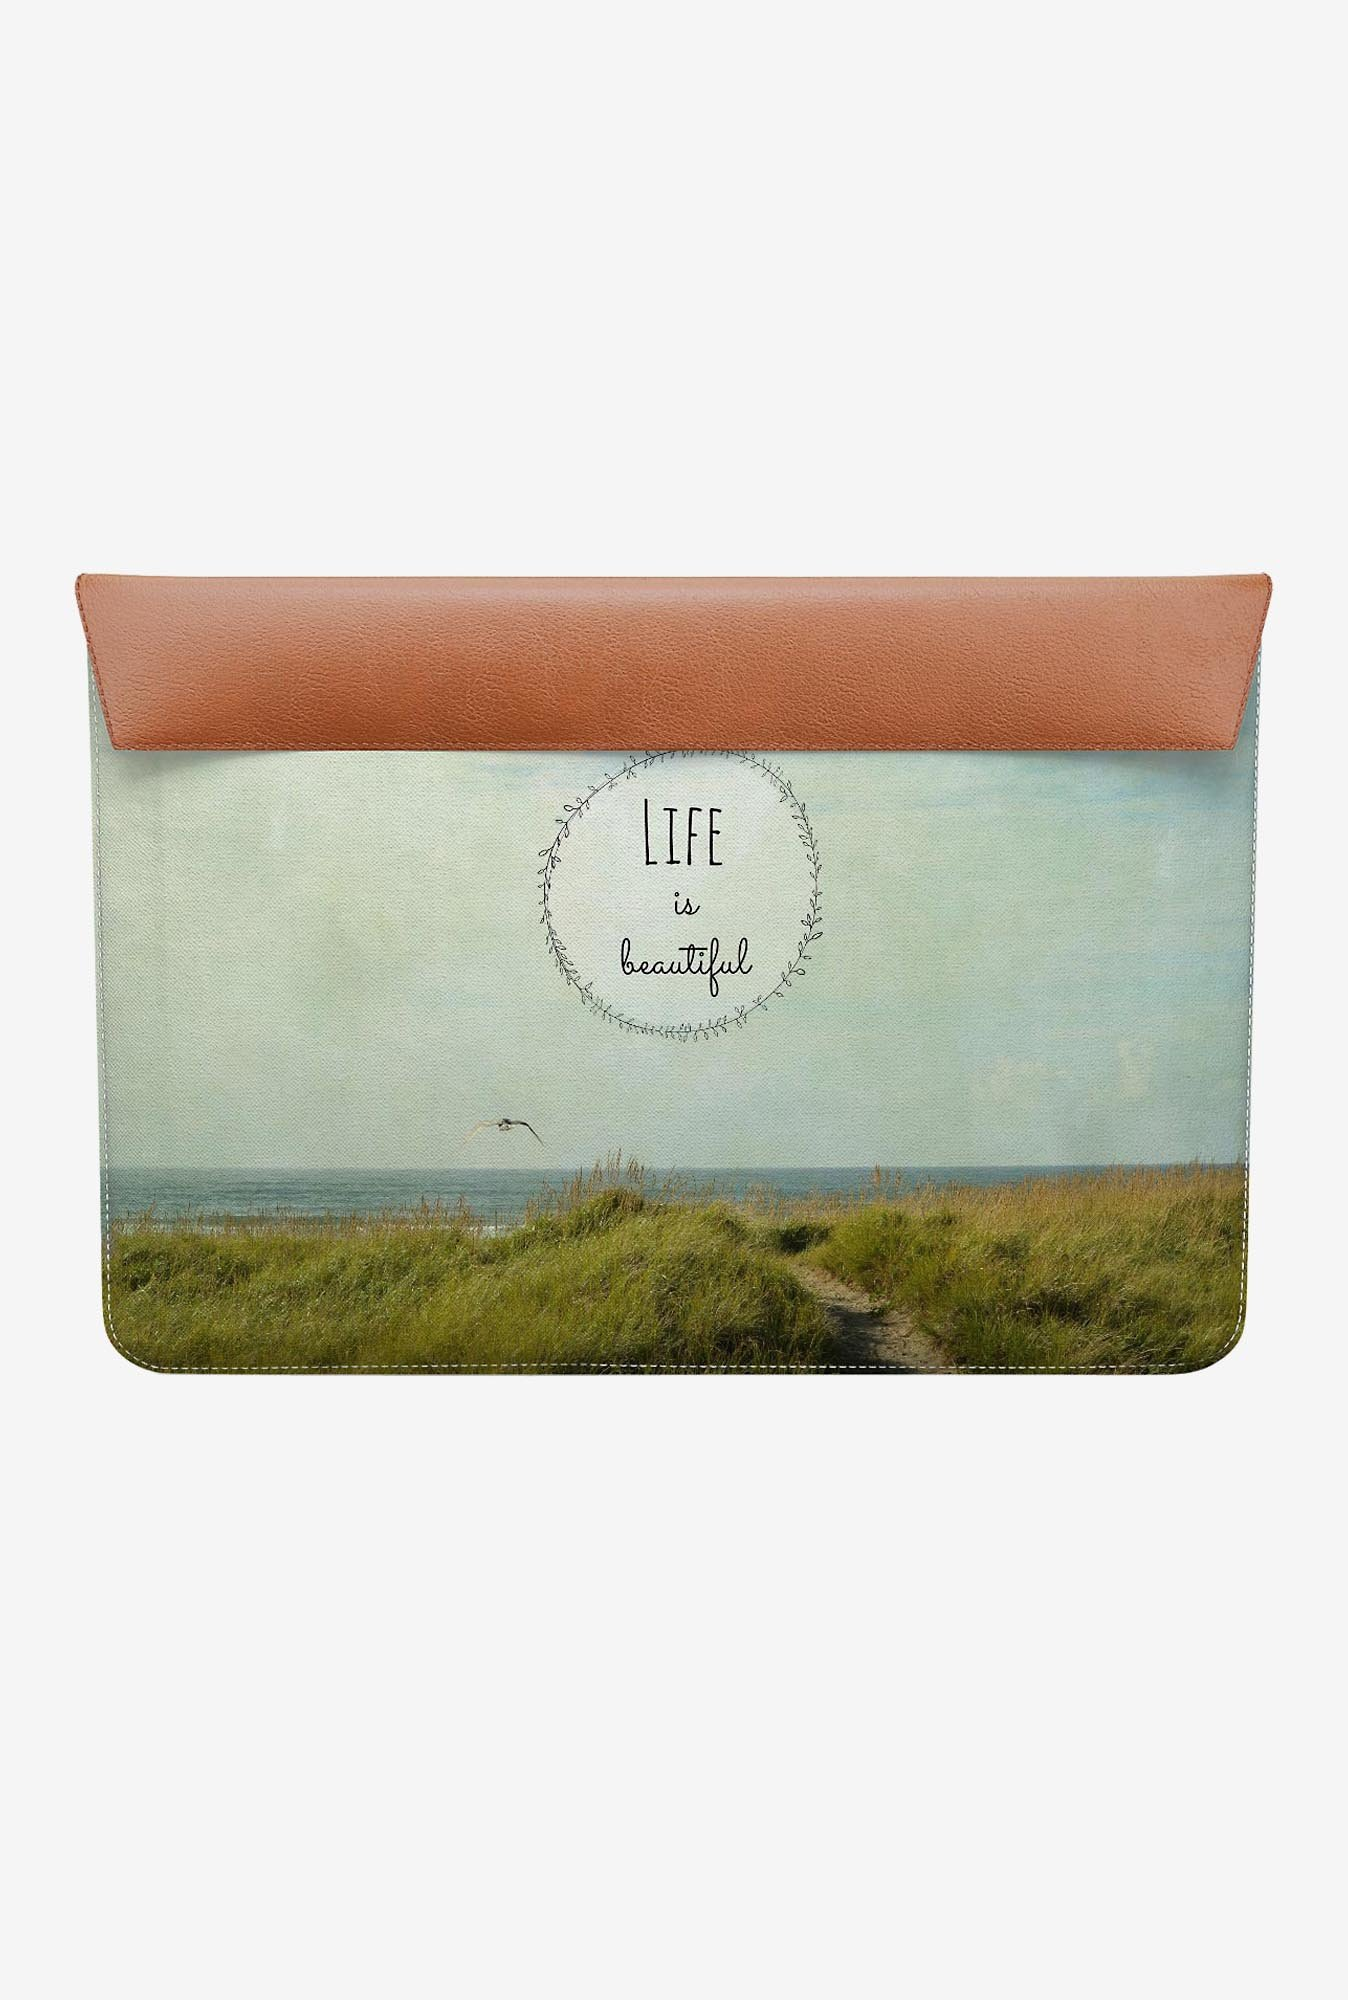 "DailyObjects Beautiful life MacBook Air 11"" Envelope Sleeve"